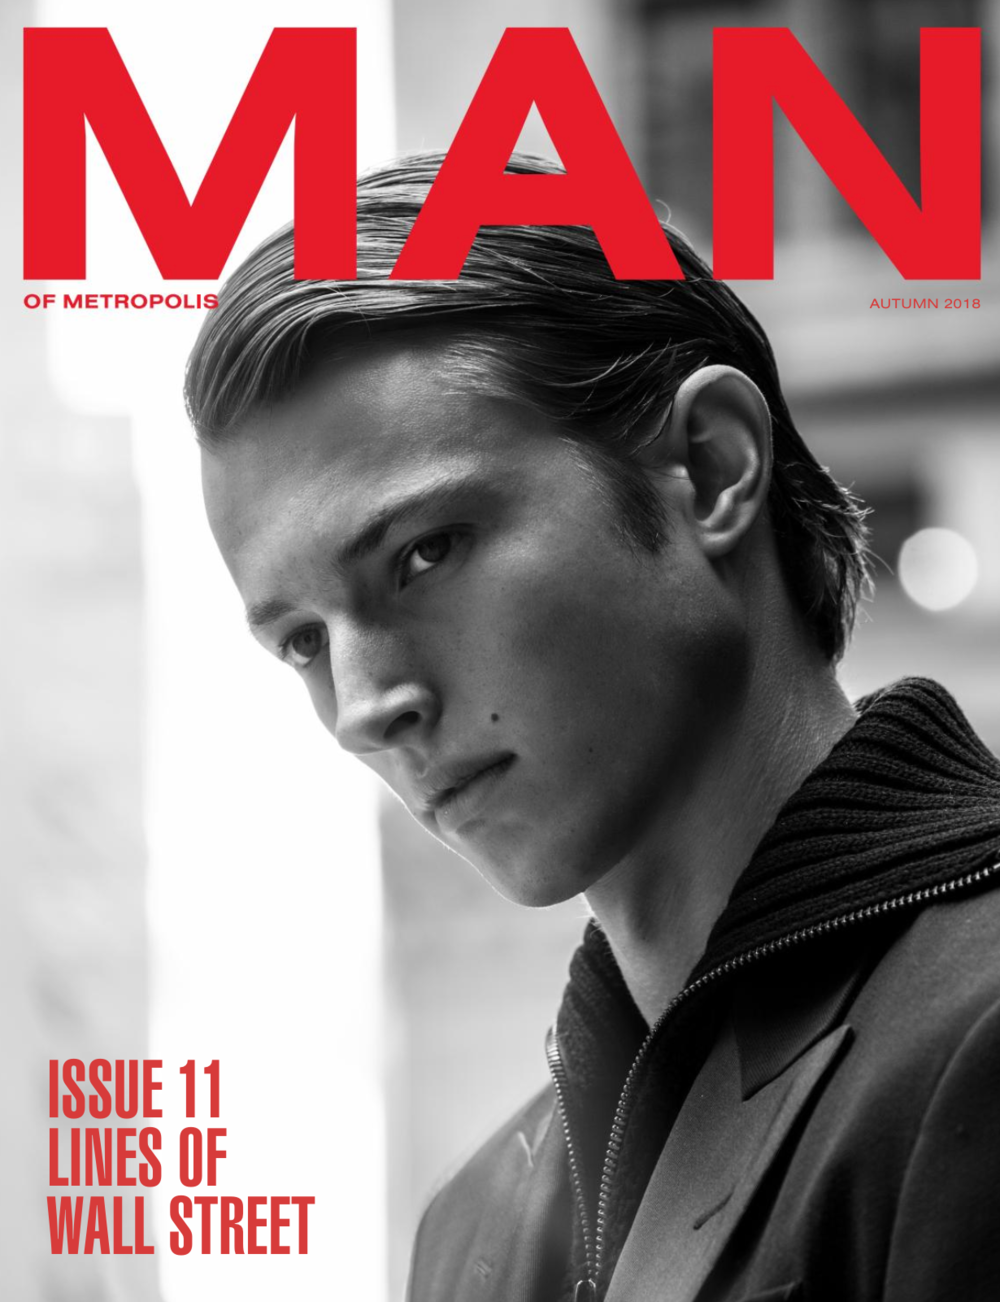 Man of Metropolis Magazine issue 11.png